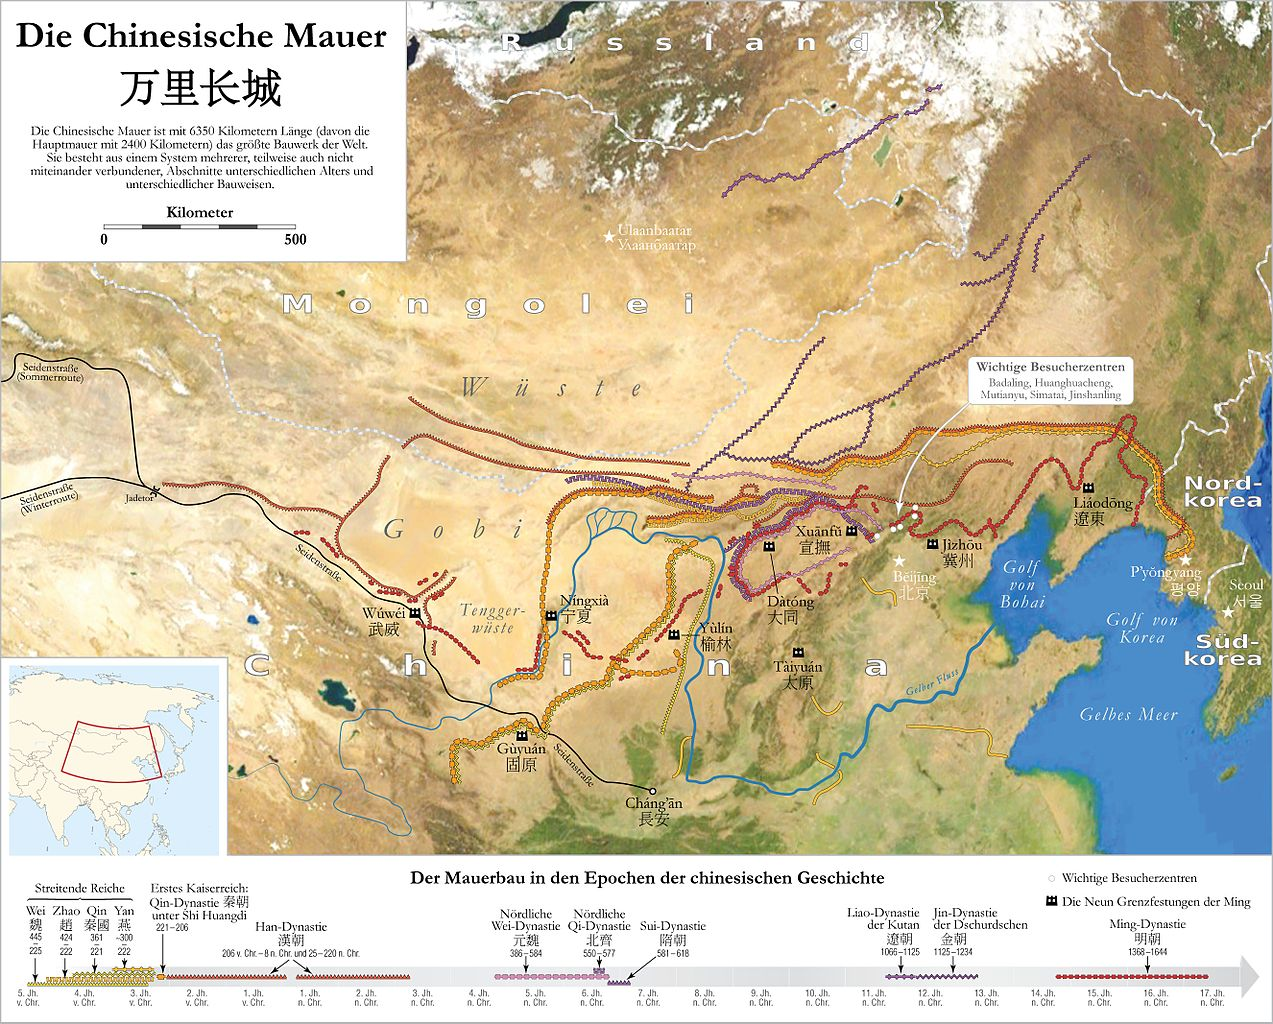 china wall map with File Die Chinesische Mauer   Karte on 280466011 additionally Yianxingqiao Scenic Resort also Quzhou1 further Jiayuguan additionally File die chinesische mauer   karte.